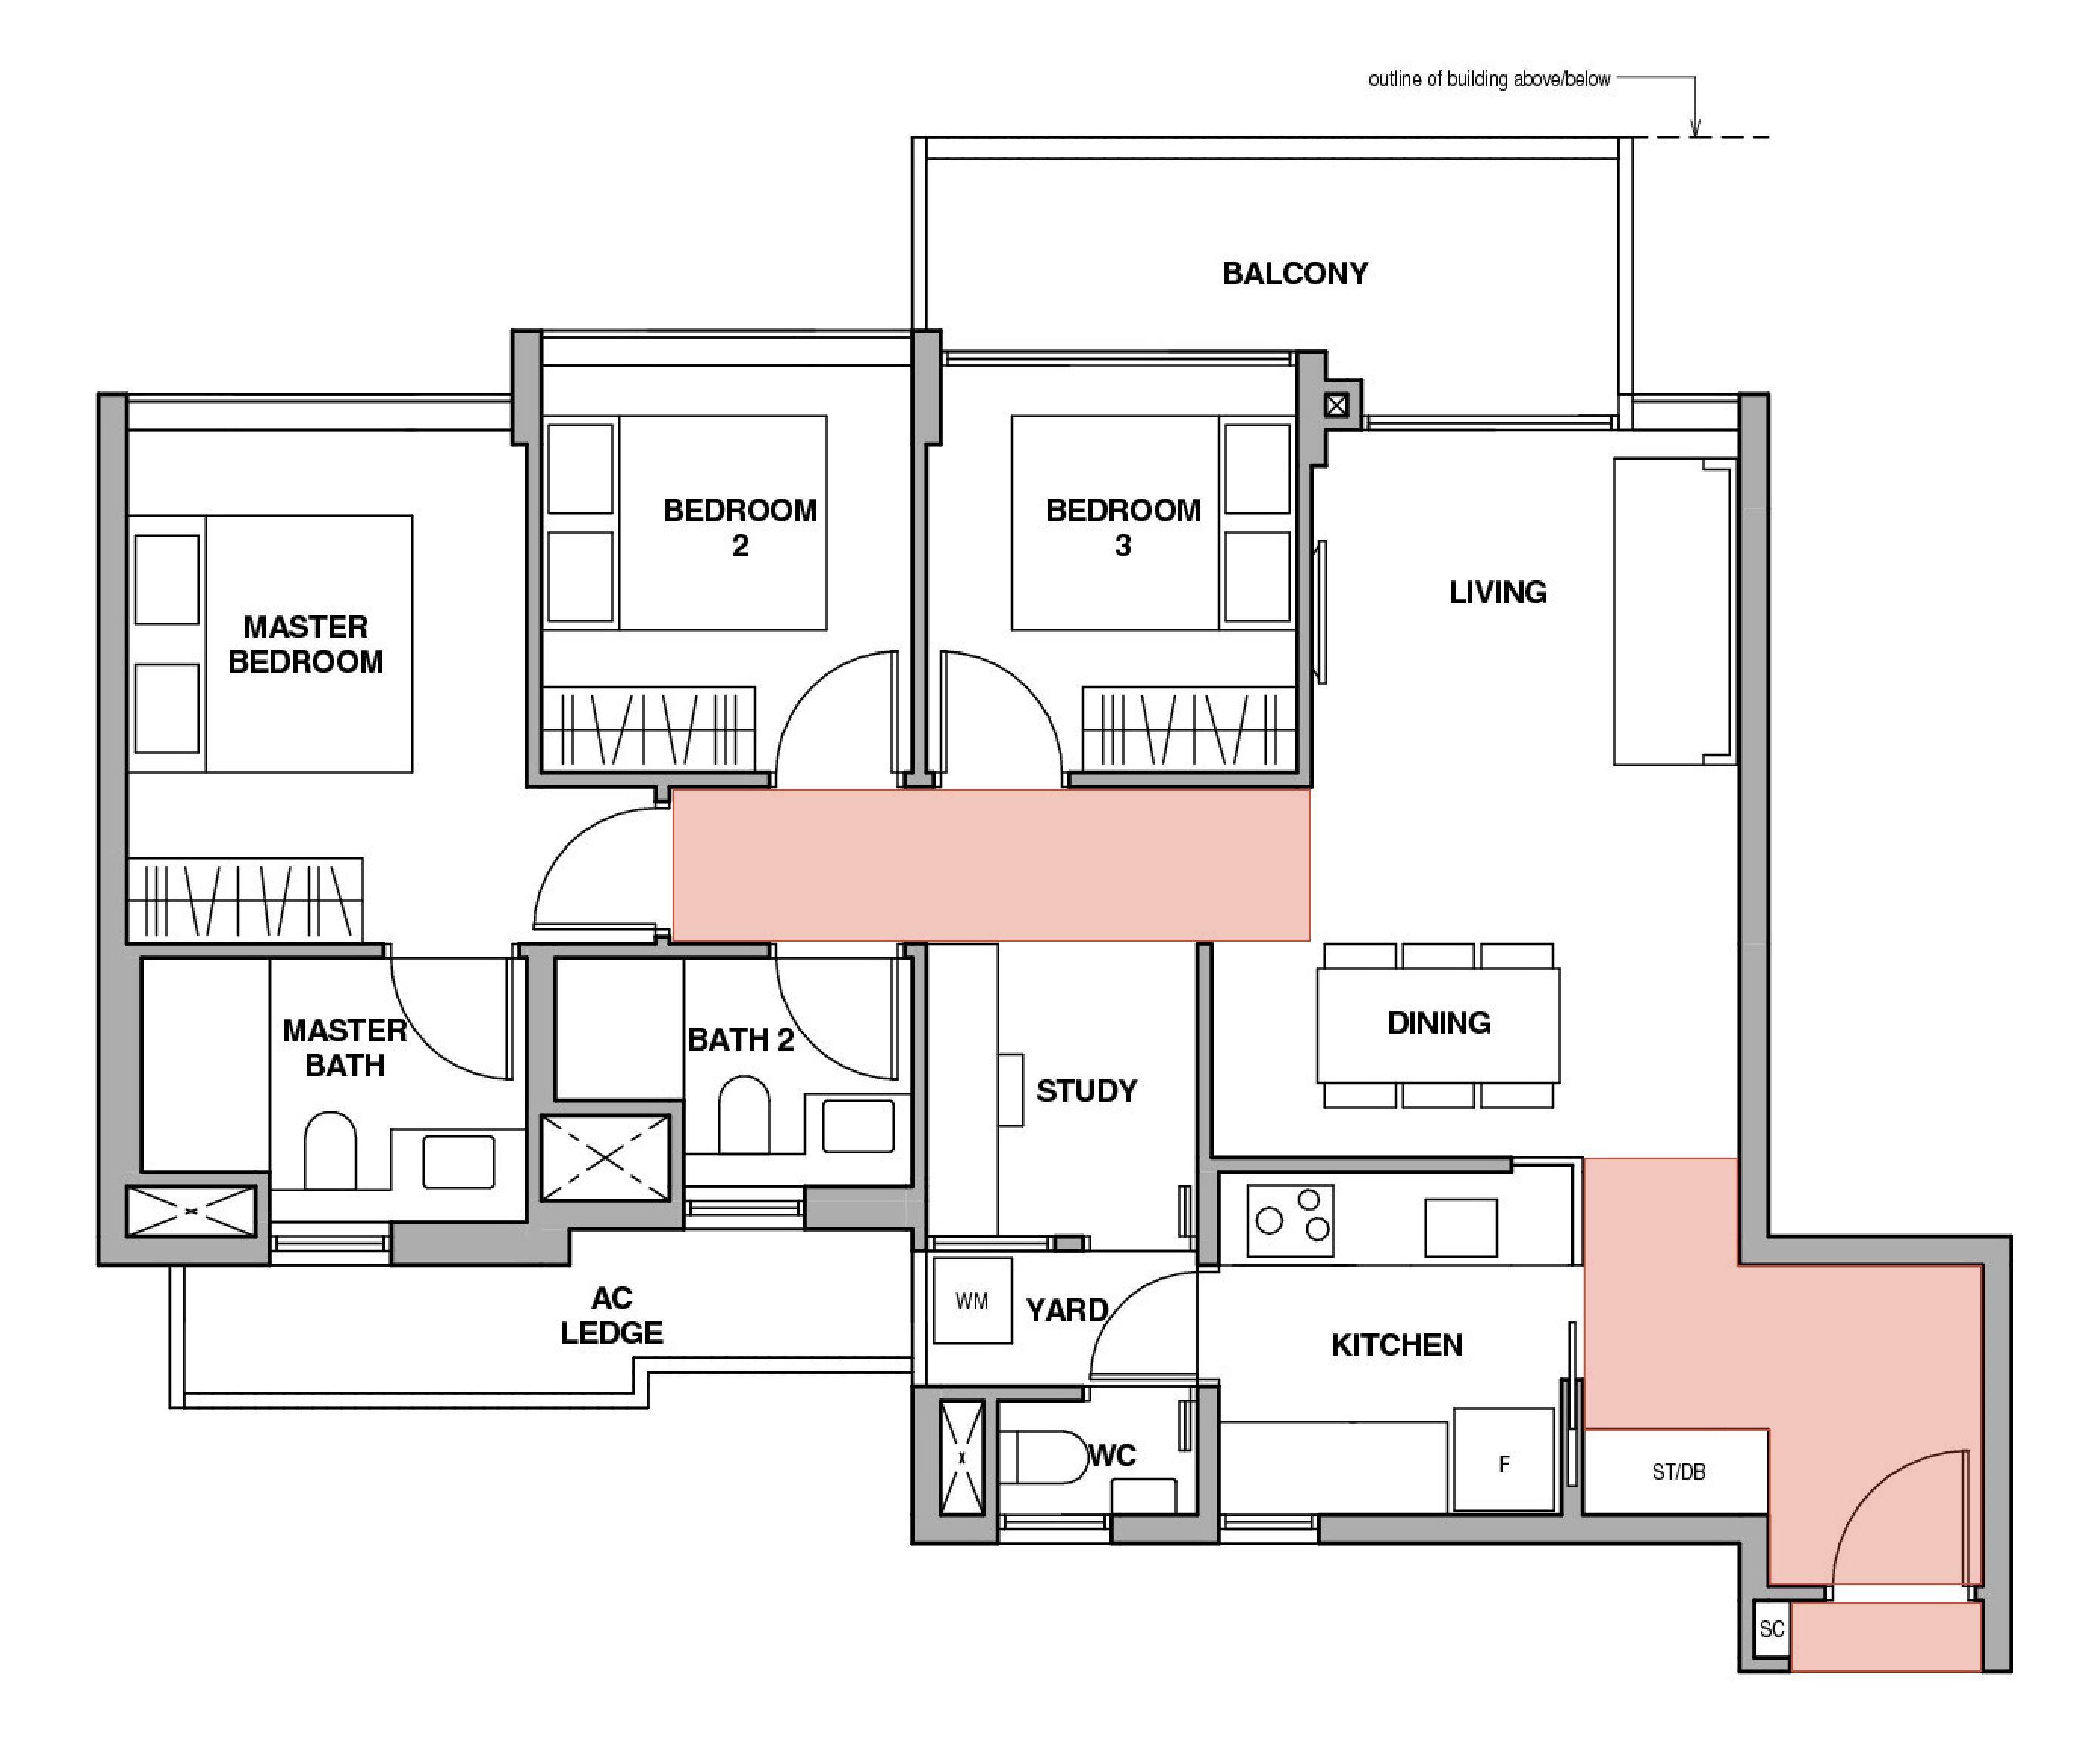 showflat floorplan inefficiencies